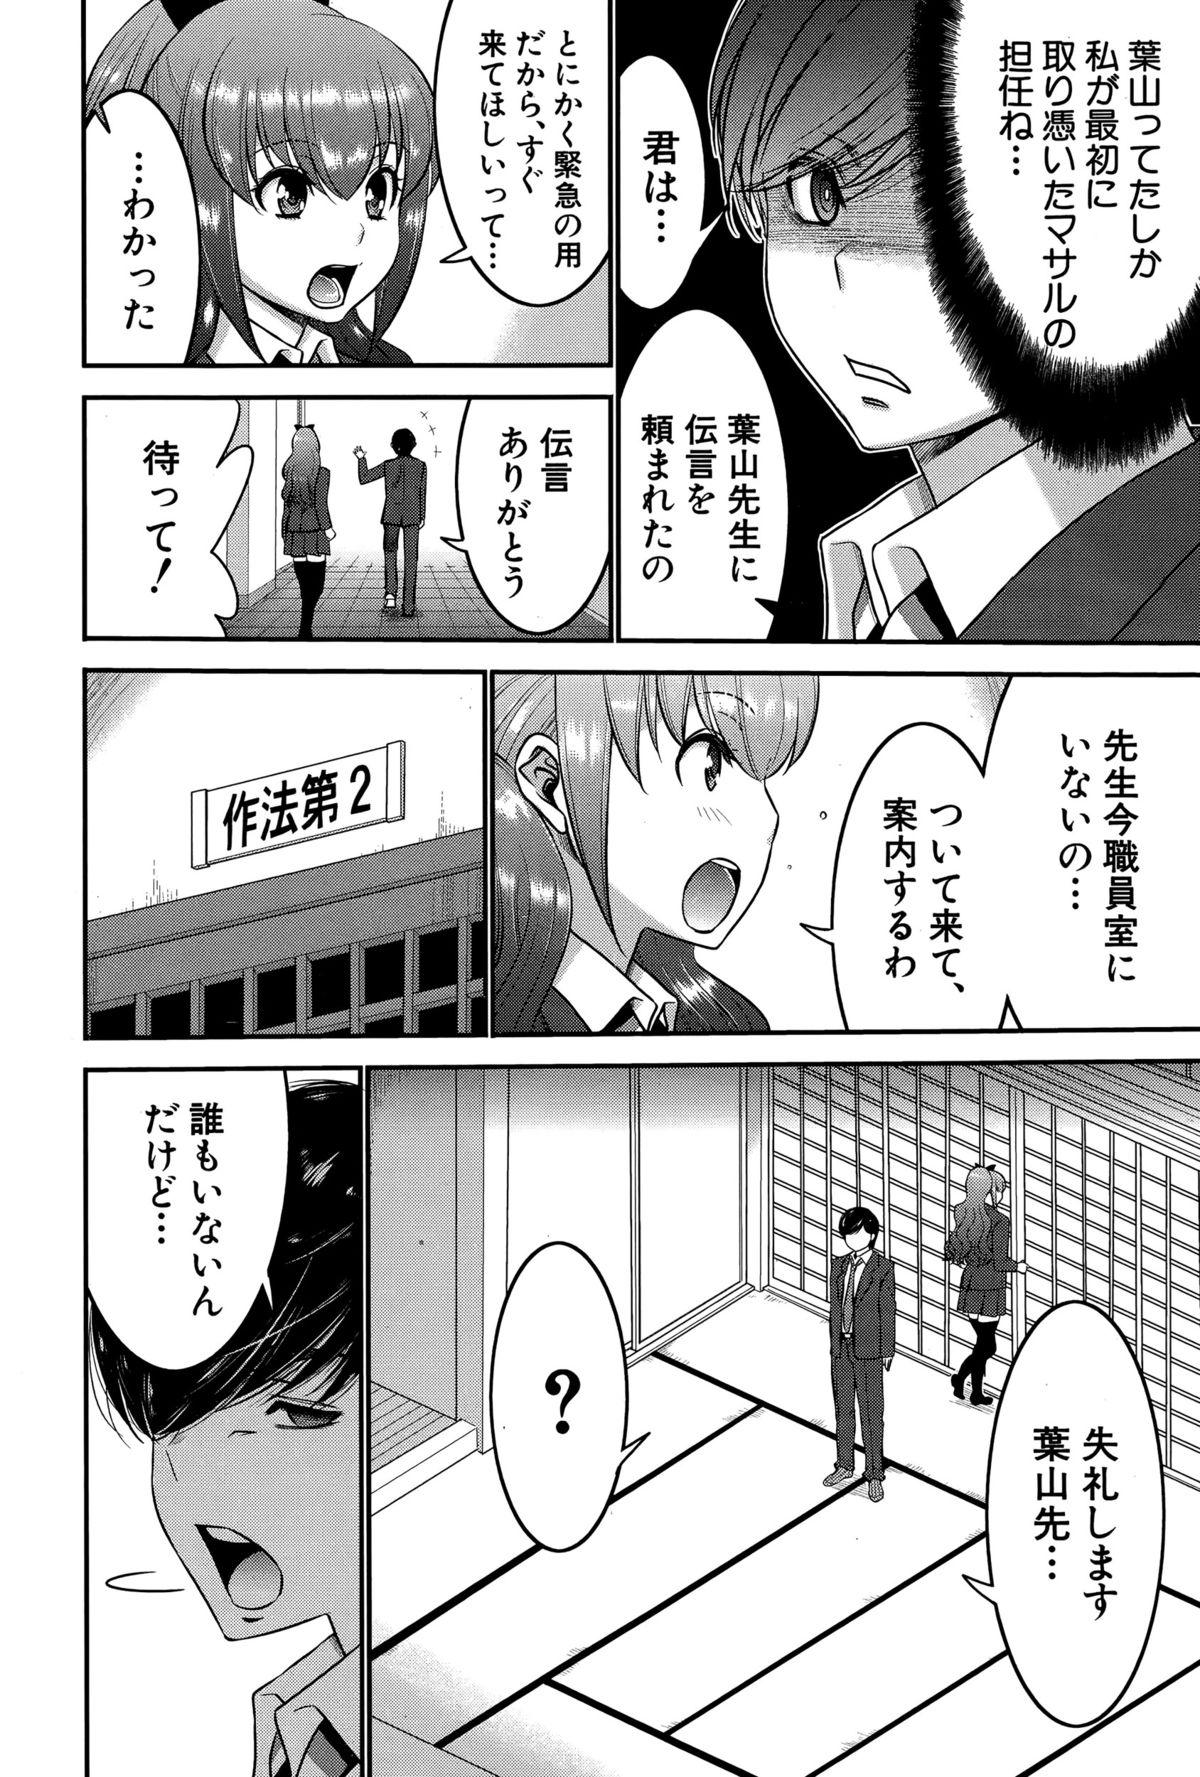 BUSTER COMIC 2015-07 253